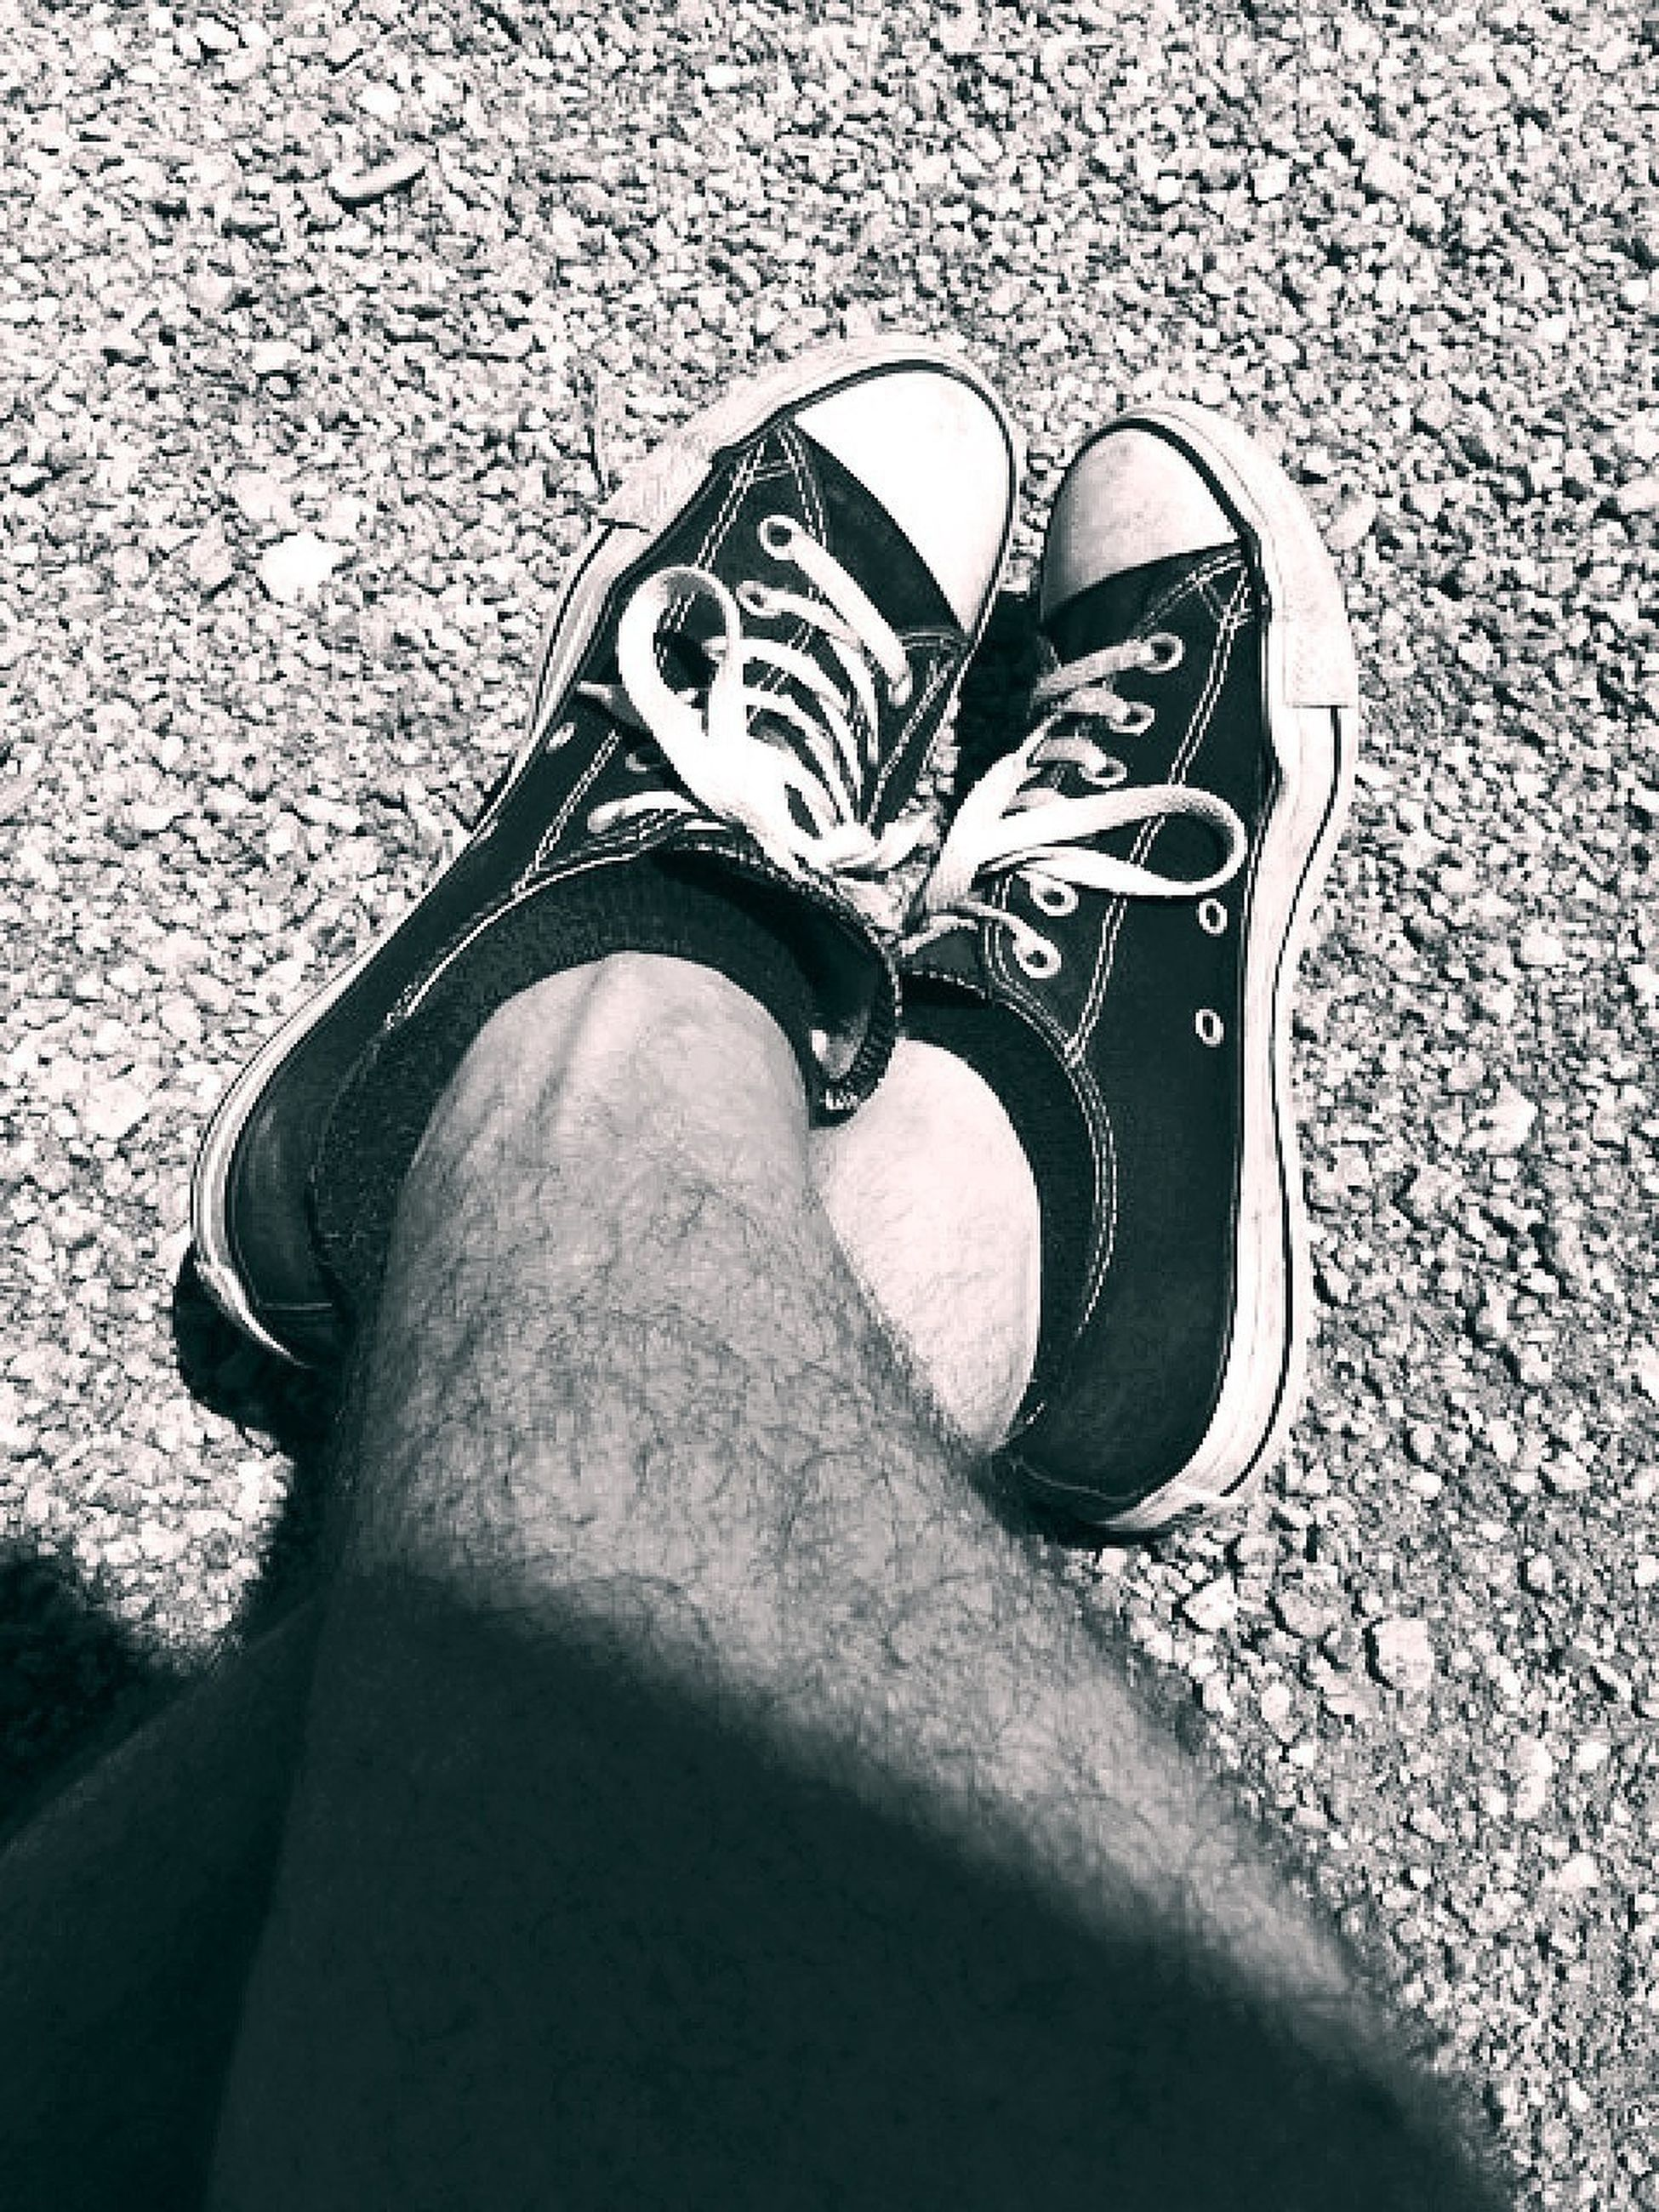 shoe, low section, person, footwear, personal perspective, high angle view, canvas shoe, pair, jeans, human foot, close-up, shoelace, street, standing, ground, day, part of